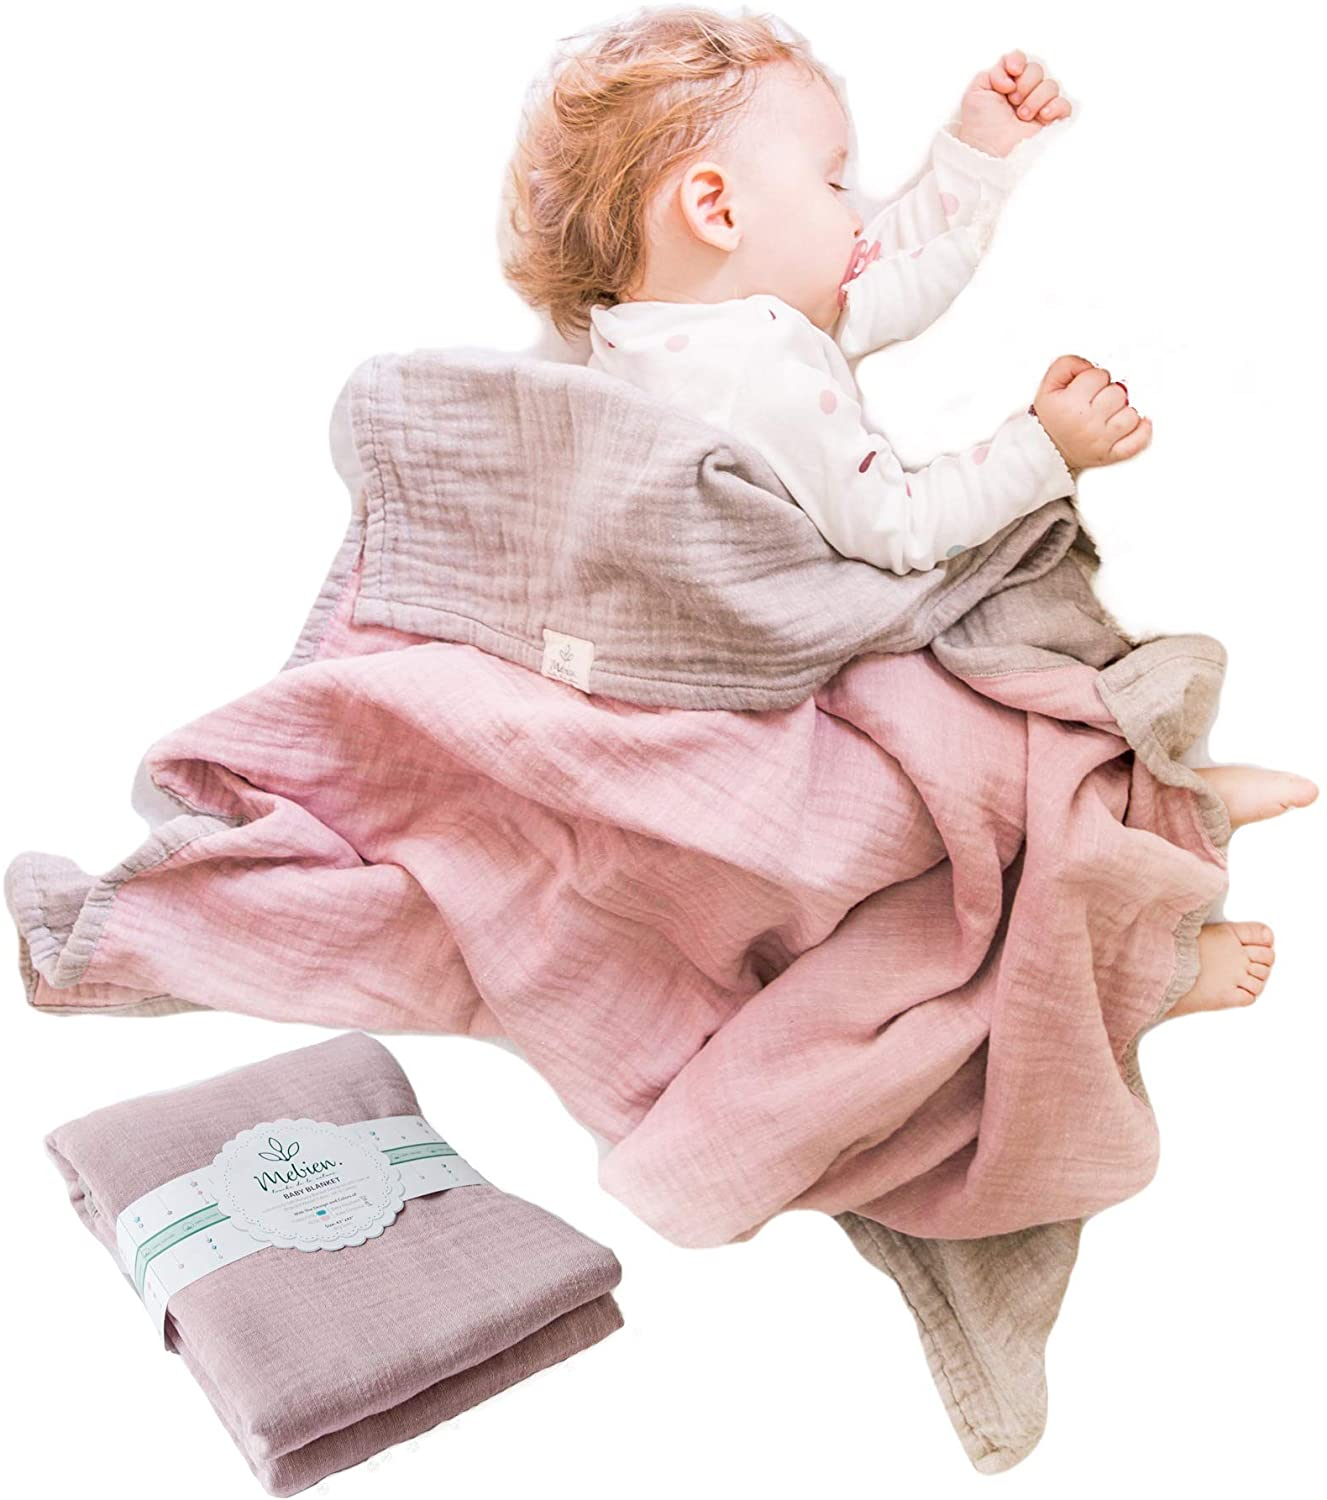 Muslin Baby Blankets for Girls Boys-Mebien Receiving Stroller Crib Nursery Bedding Lightweight Blanket Quilt Swaddle -Infant Toddler Newborn Unisex -Baby Shower Registry Gifts-Cotton Grey&Rose 38x42